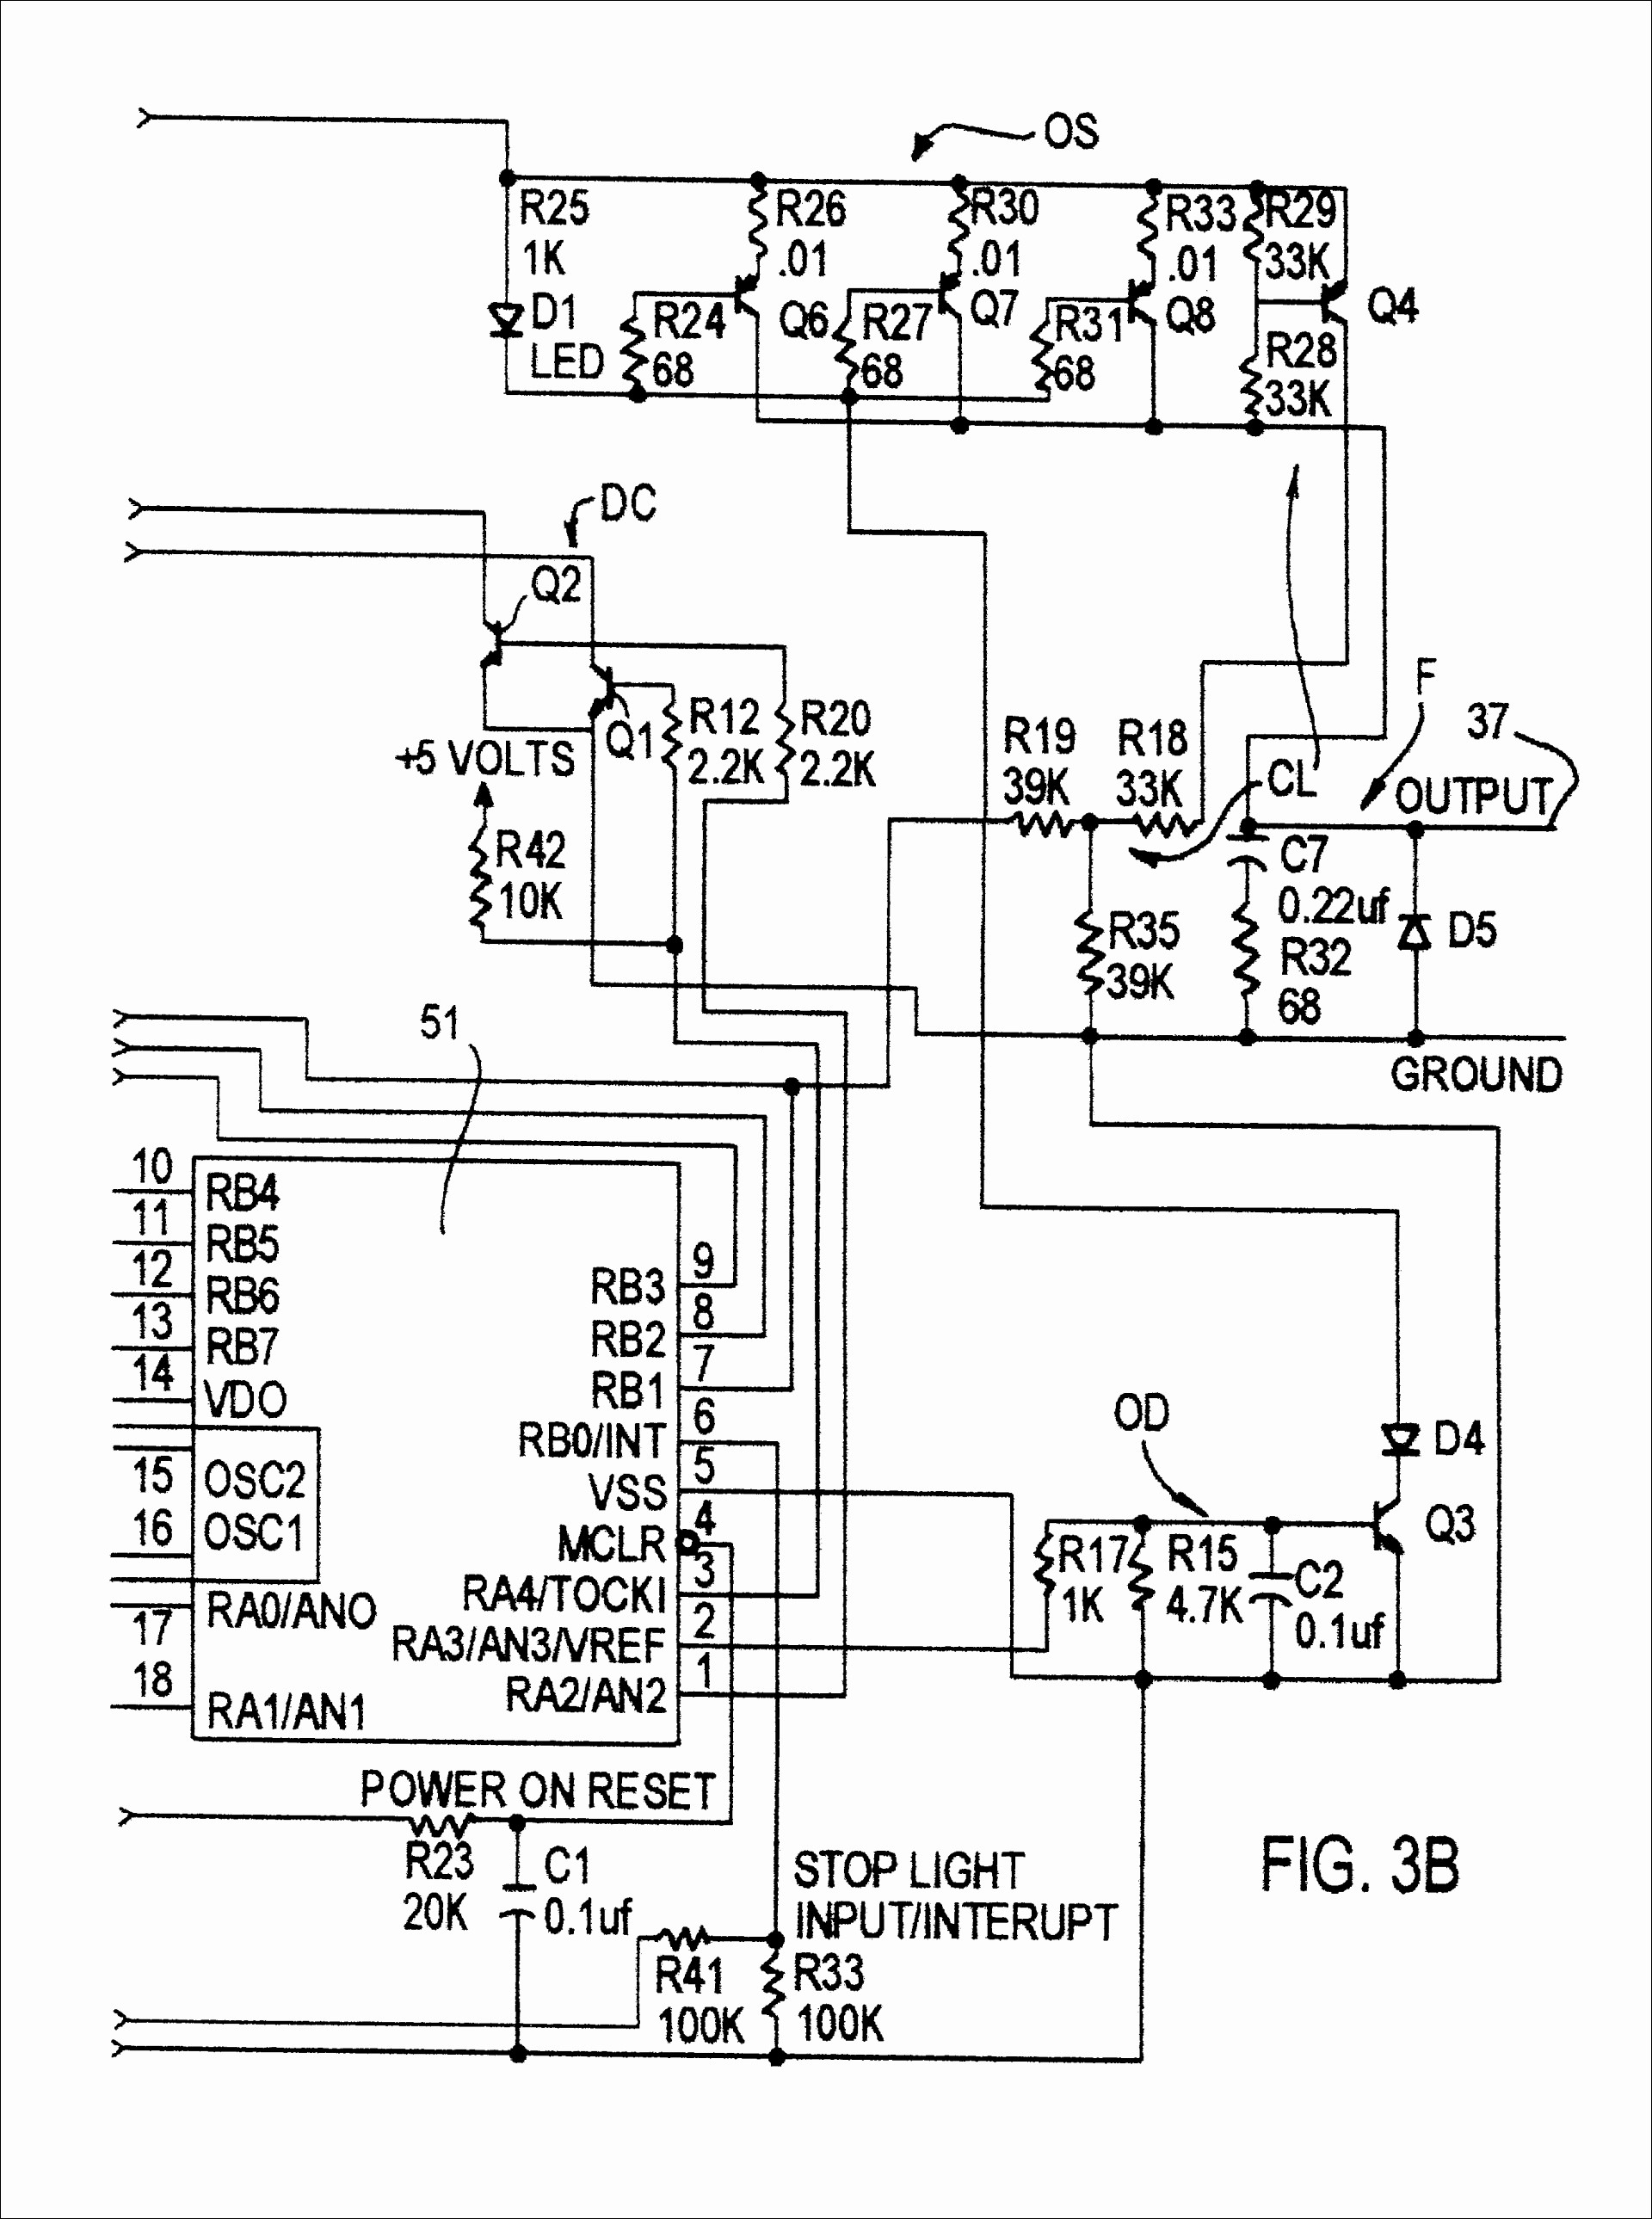 hight resolution of 1999 silverado wiring harness routing electrical wiring diagram 2002 chrysler sebring 2 7 engine diagram chrysler